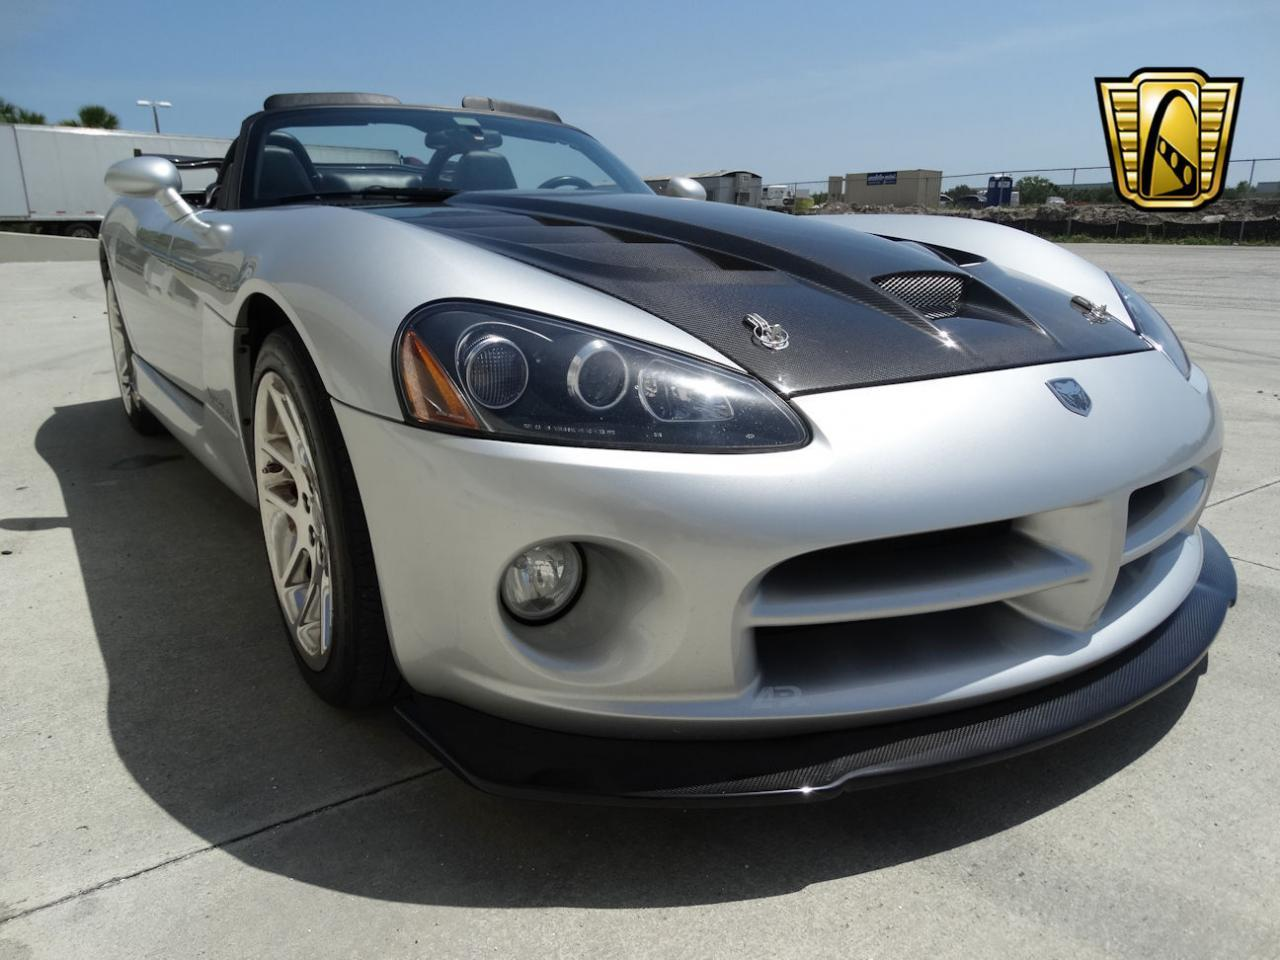 Large Picture of '04 Viper located in Florida - $54,000.00 Offered by Gateway Classic Cars - Fort Lauderdale - L6GU